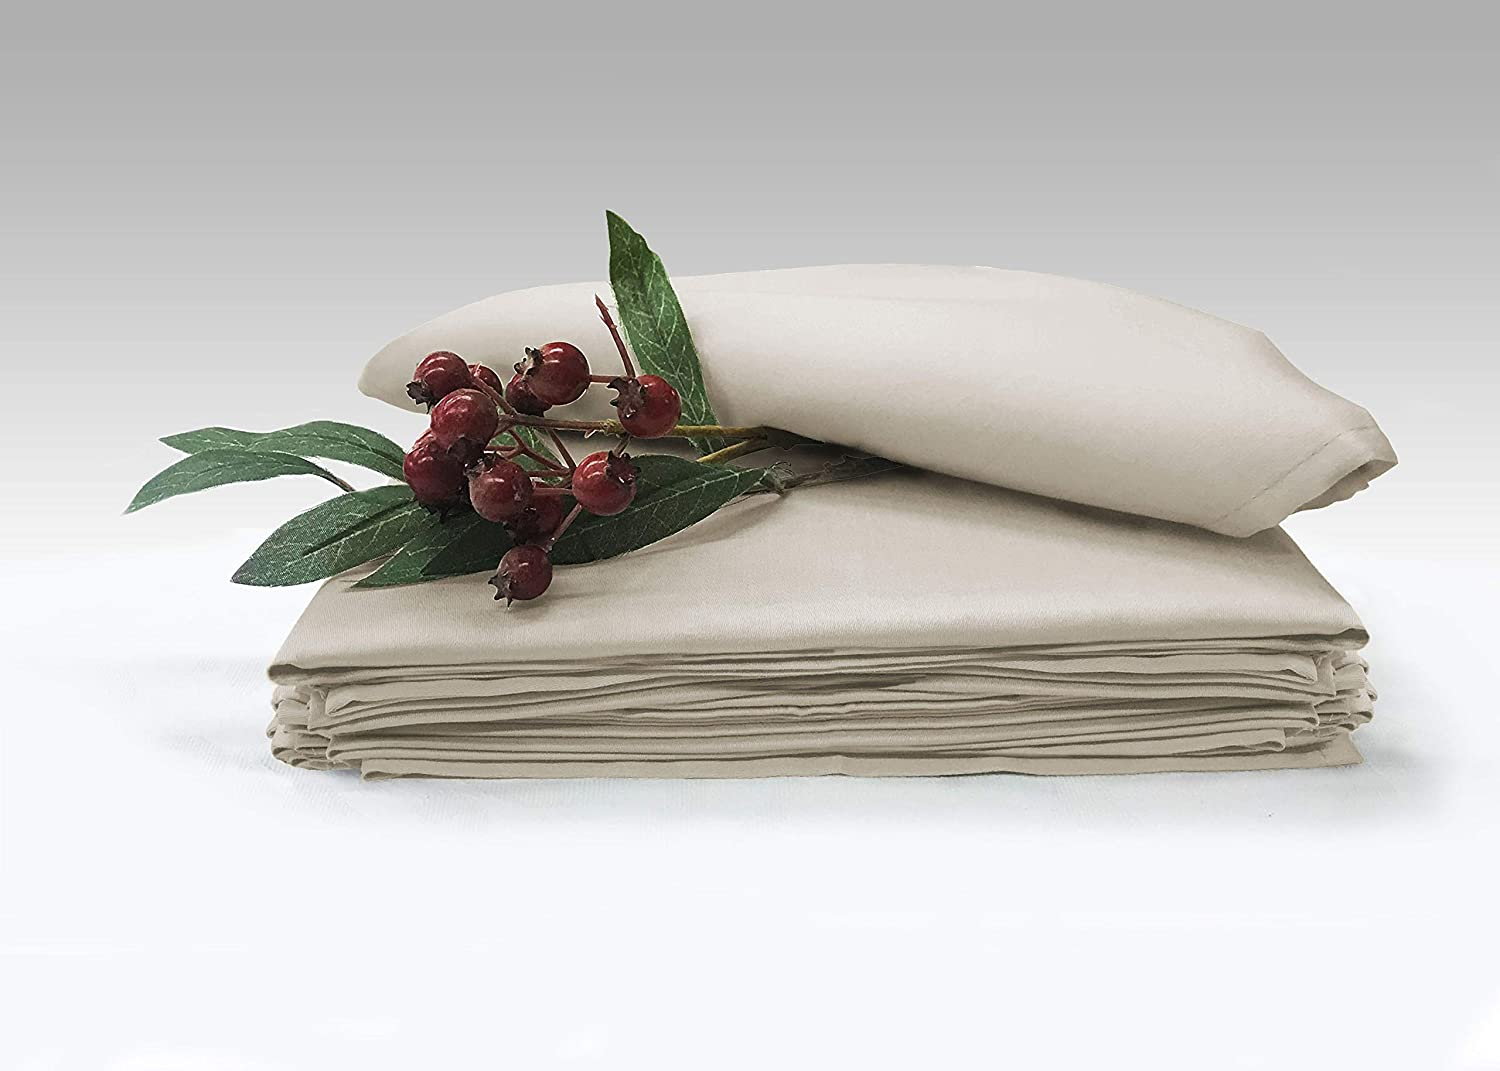 Amazon Com Pizuna Soft Absorbent Cotton Cloth Small Dinner Napkins Beige 6pc 14 Inch X 14 Inch 100 Long Staple Cotton Sateen Weave Hemstitched Lunch Napkins 100 Cotton Taupe Sapphire Napkins Home Kitchen